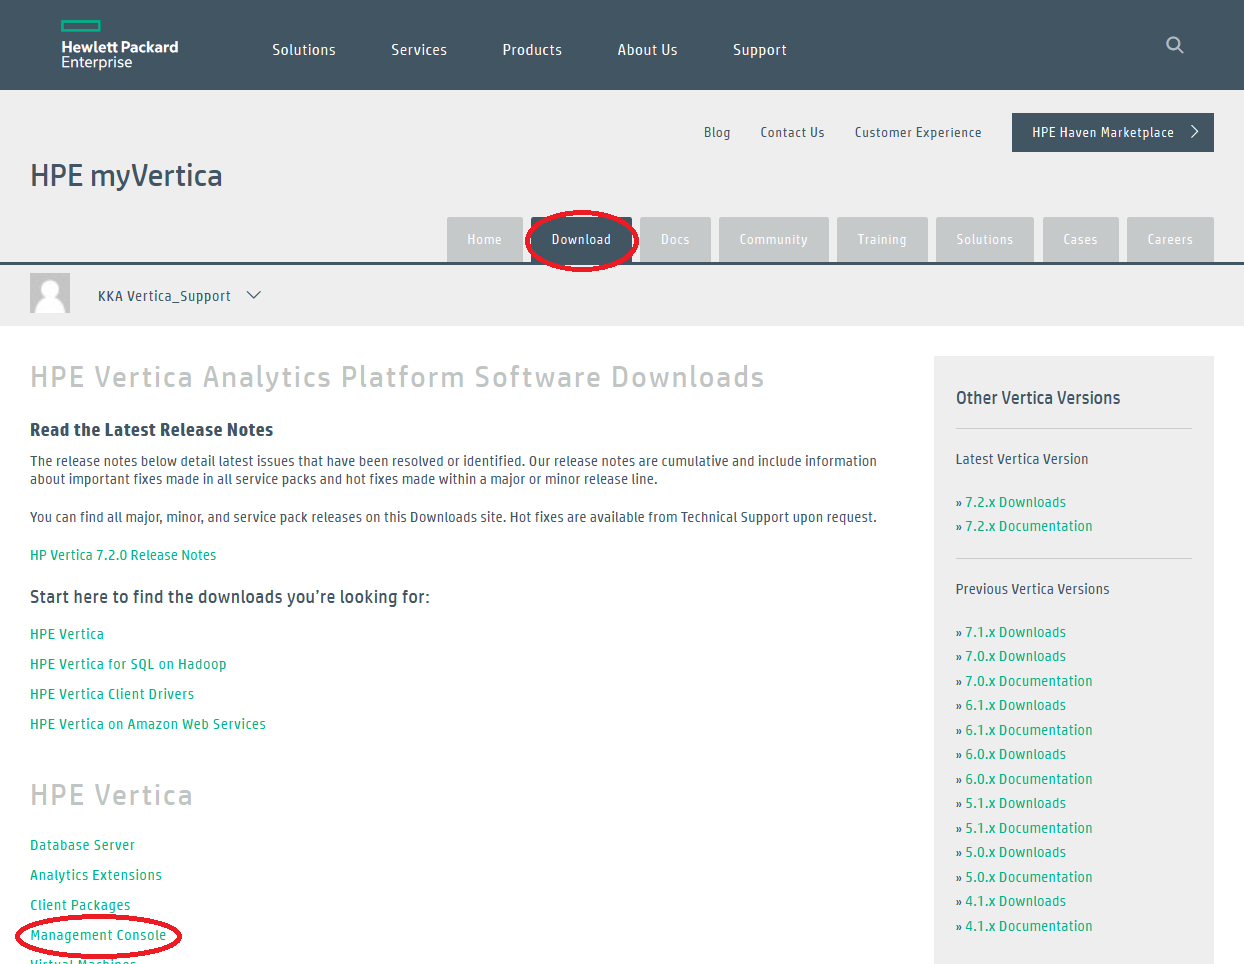 HPE Vertica Analytics Platform Software Downloads  MyVertica_2015-11-09_10-14-52